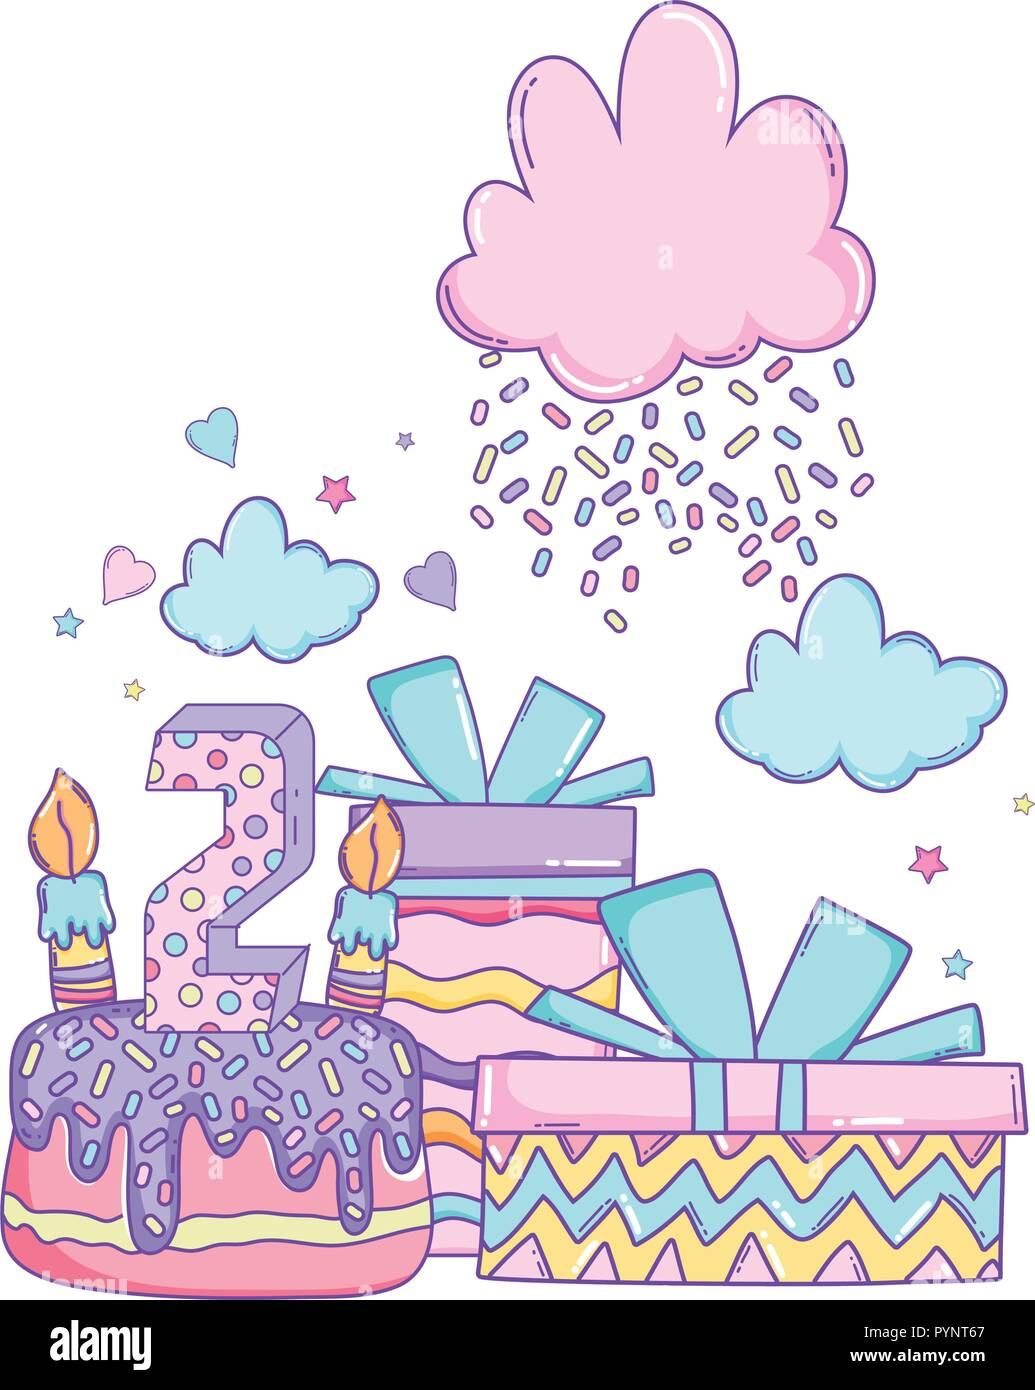 Happy Birthday Cartoons Stock Vector Art Illustration Vector